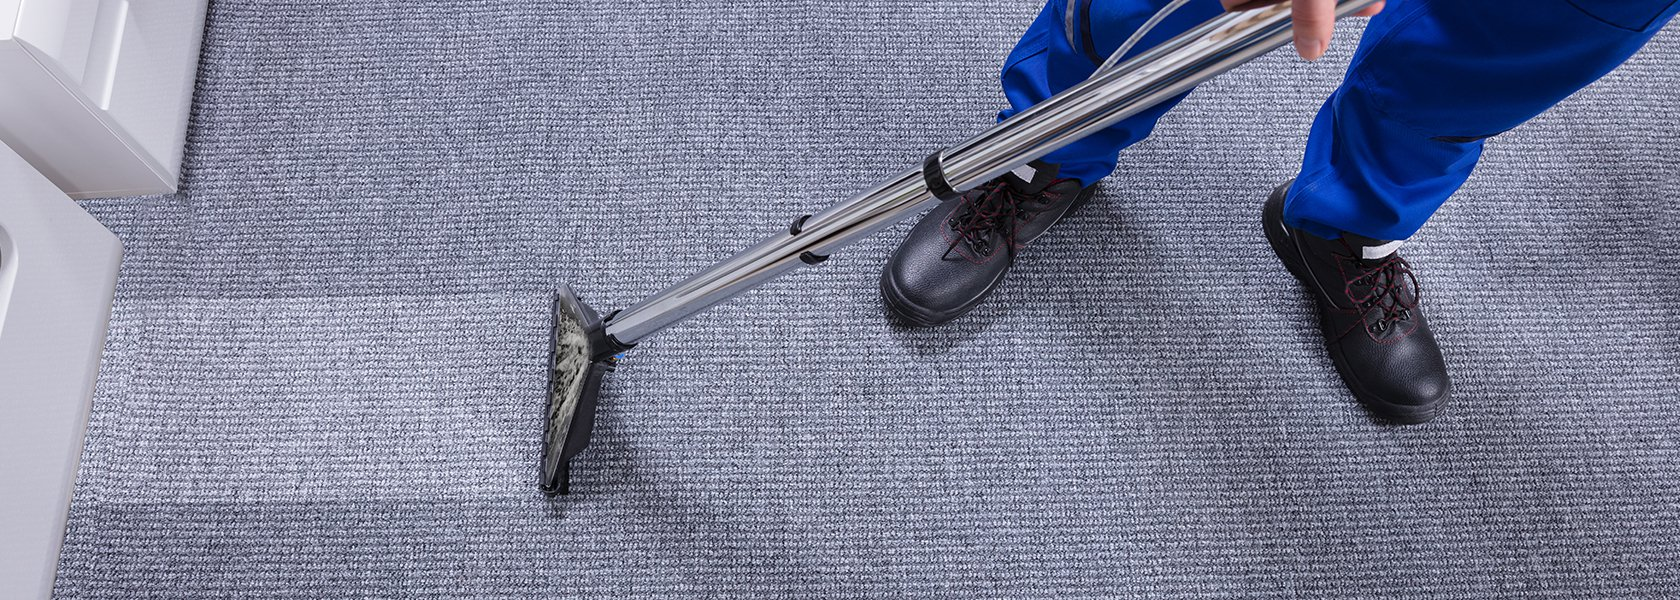 How To Get Stains Out of the Carpet